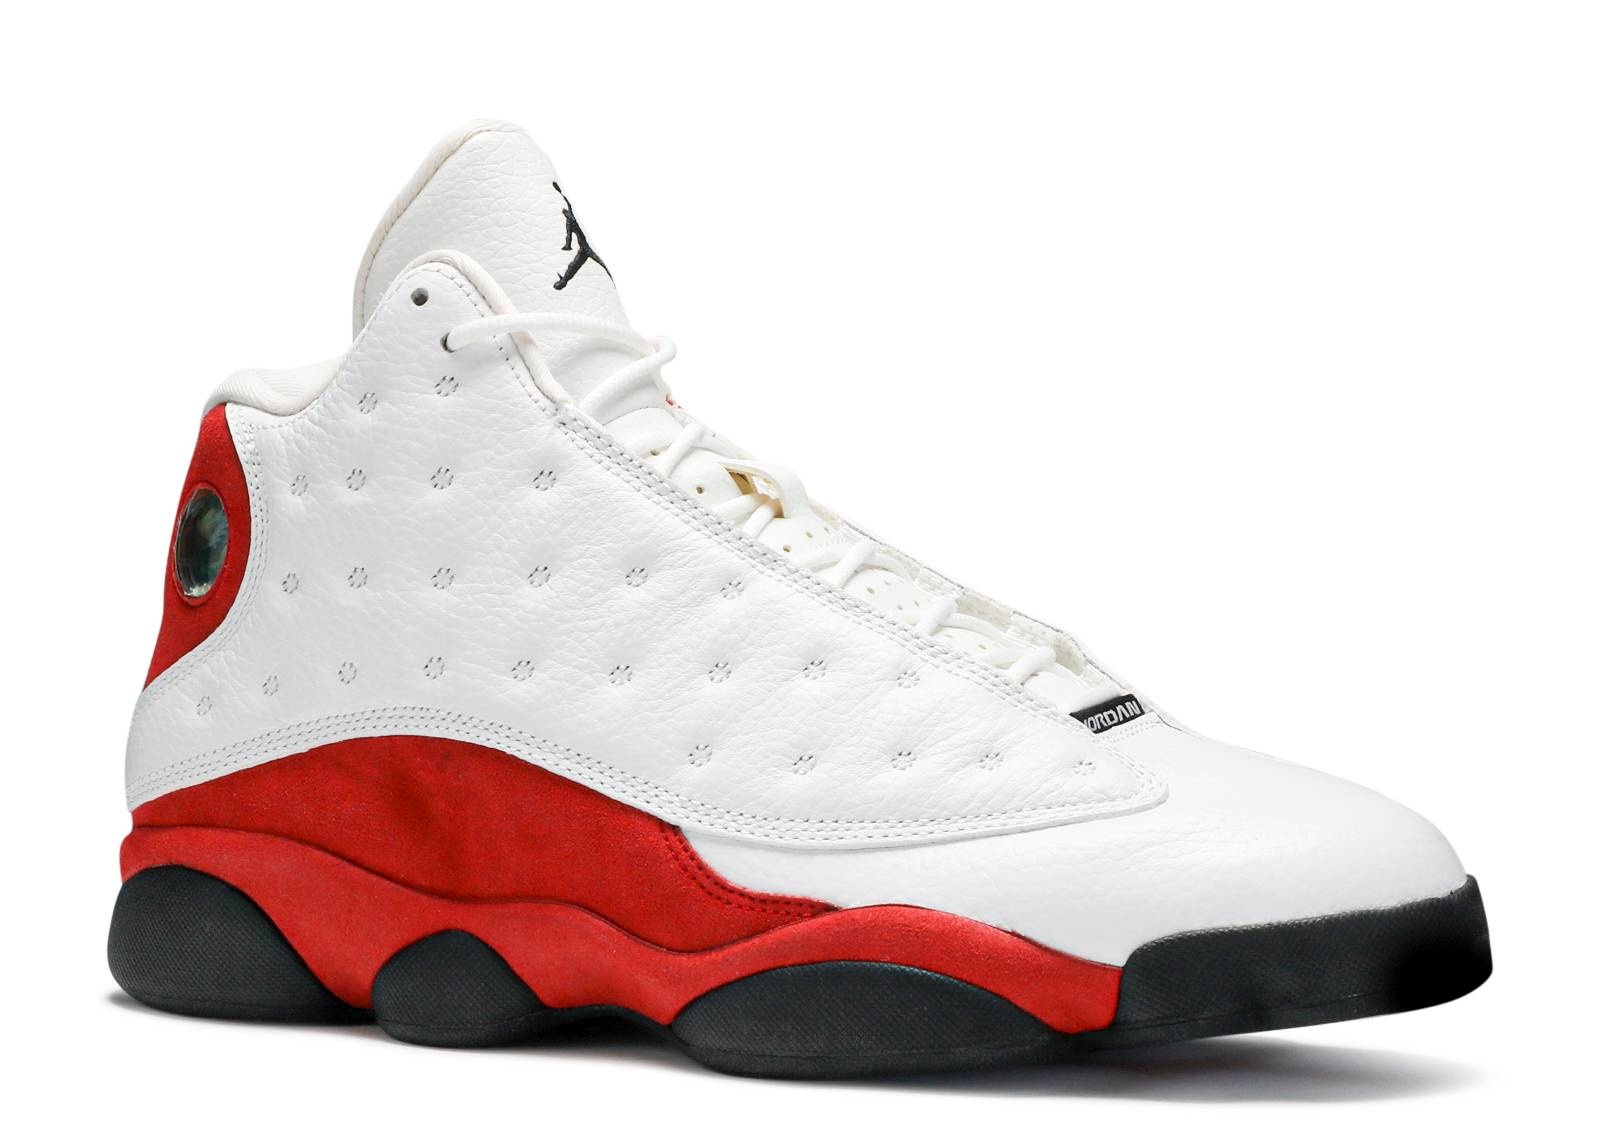 jordan 13 retro white red